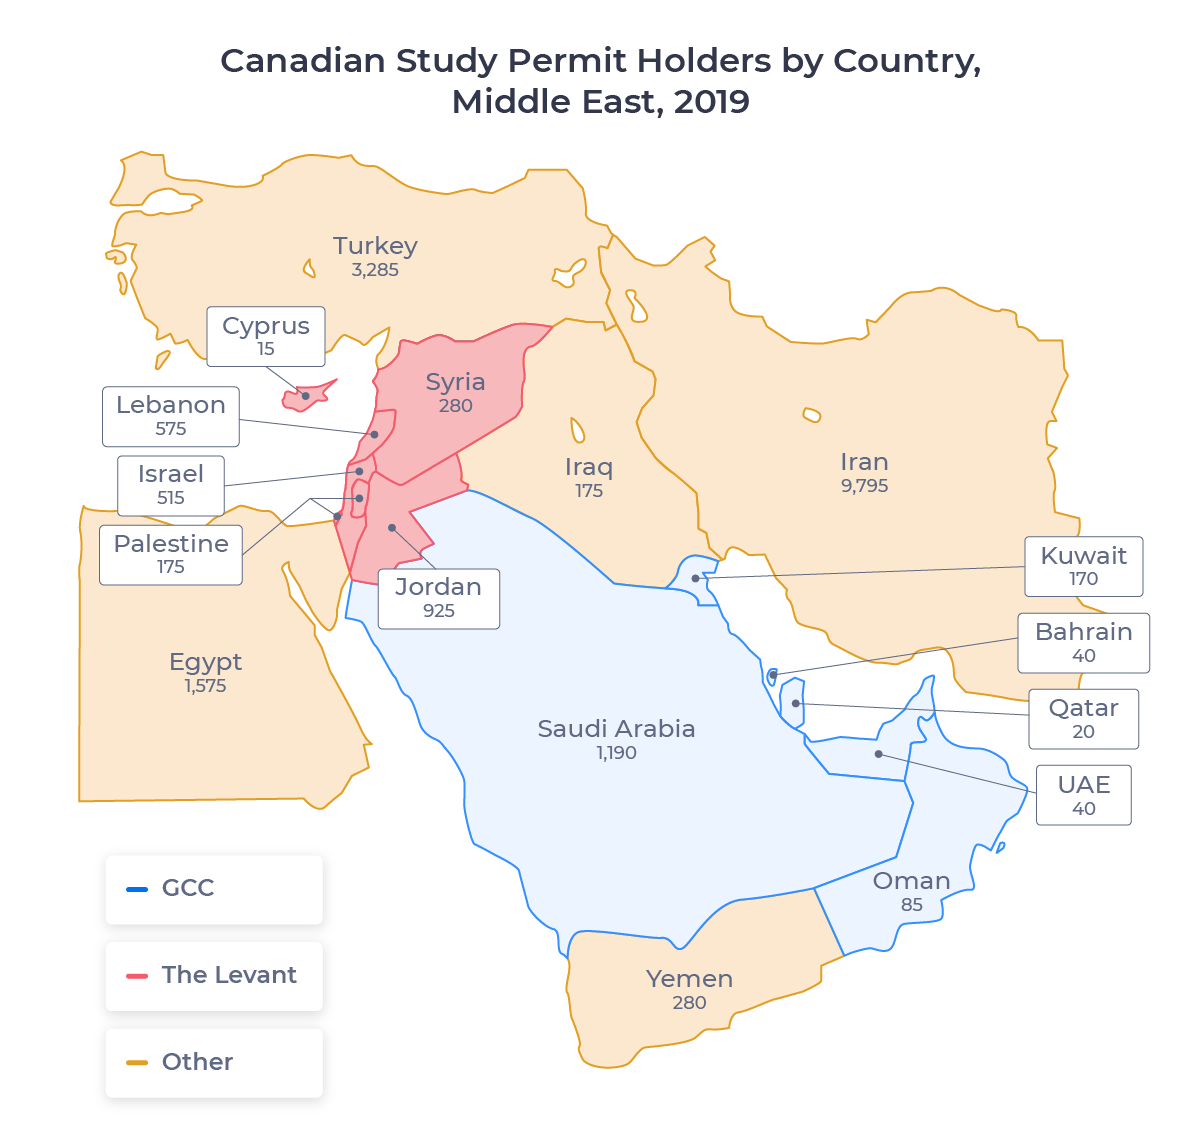 Map showing the countries of the Middle East. Includes Cyprus, Lebanon, Israel, Palestine, Syria, and Jordan (the Levant); Saudi Arabia, Kuwait, Bahrain, Qatar, UAE, and Oman (GCC); and Egypt, Turkey, Iran, Iraq, and Yemen.